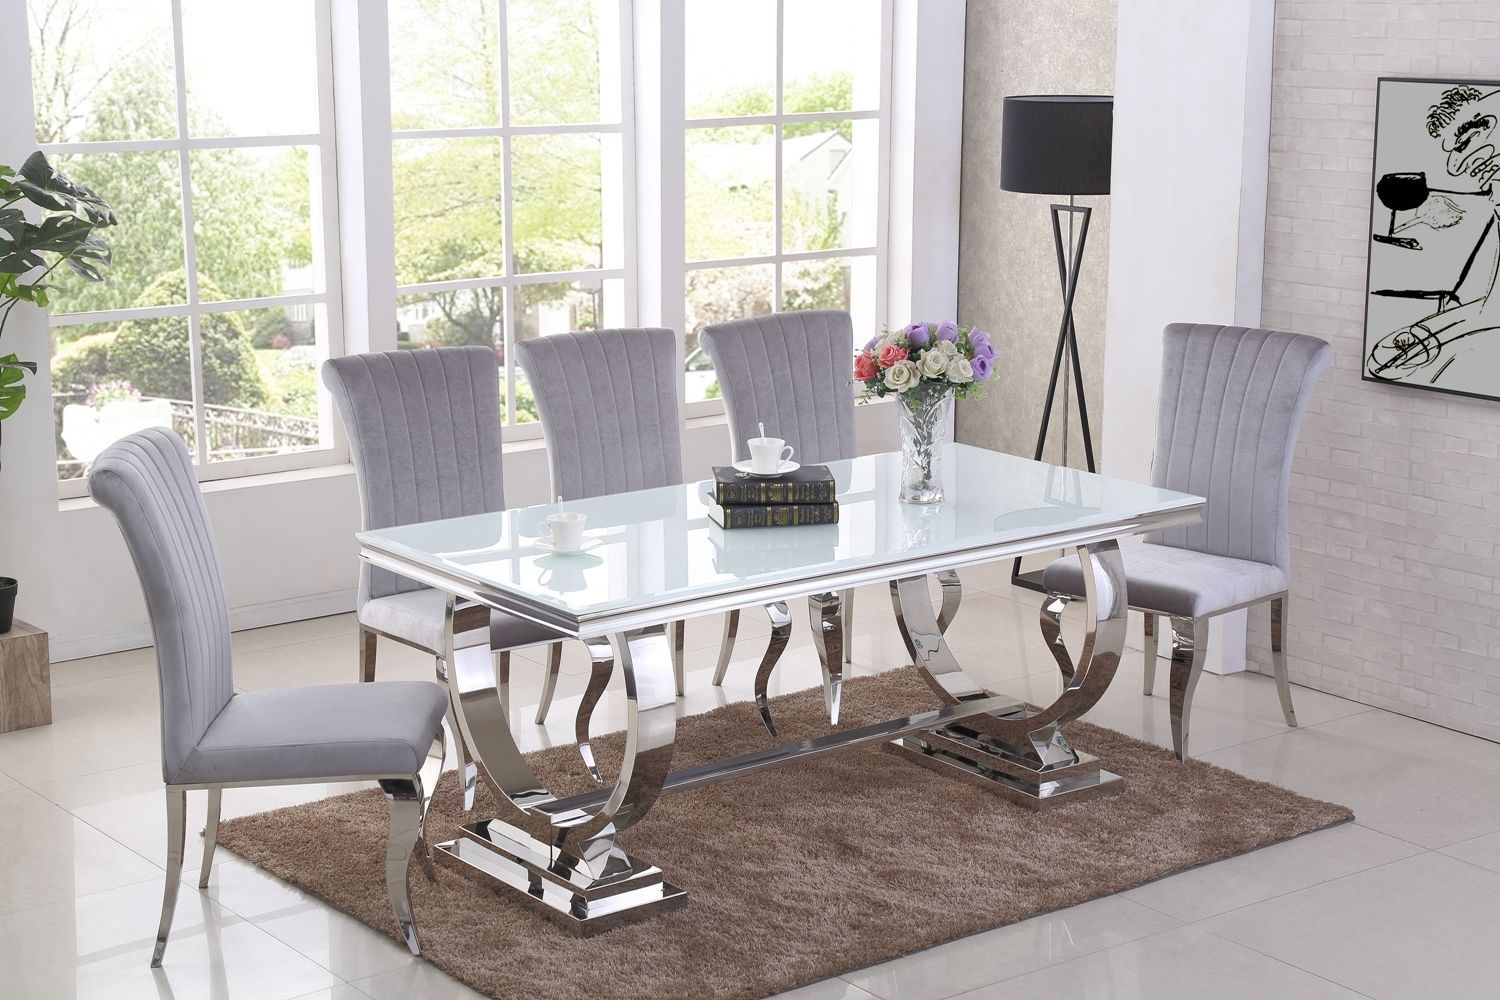 White Dining Room Chair Ga Romano White Dining Table 4 6 8 Grey Chairs